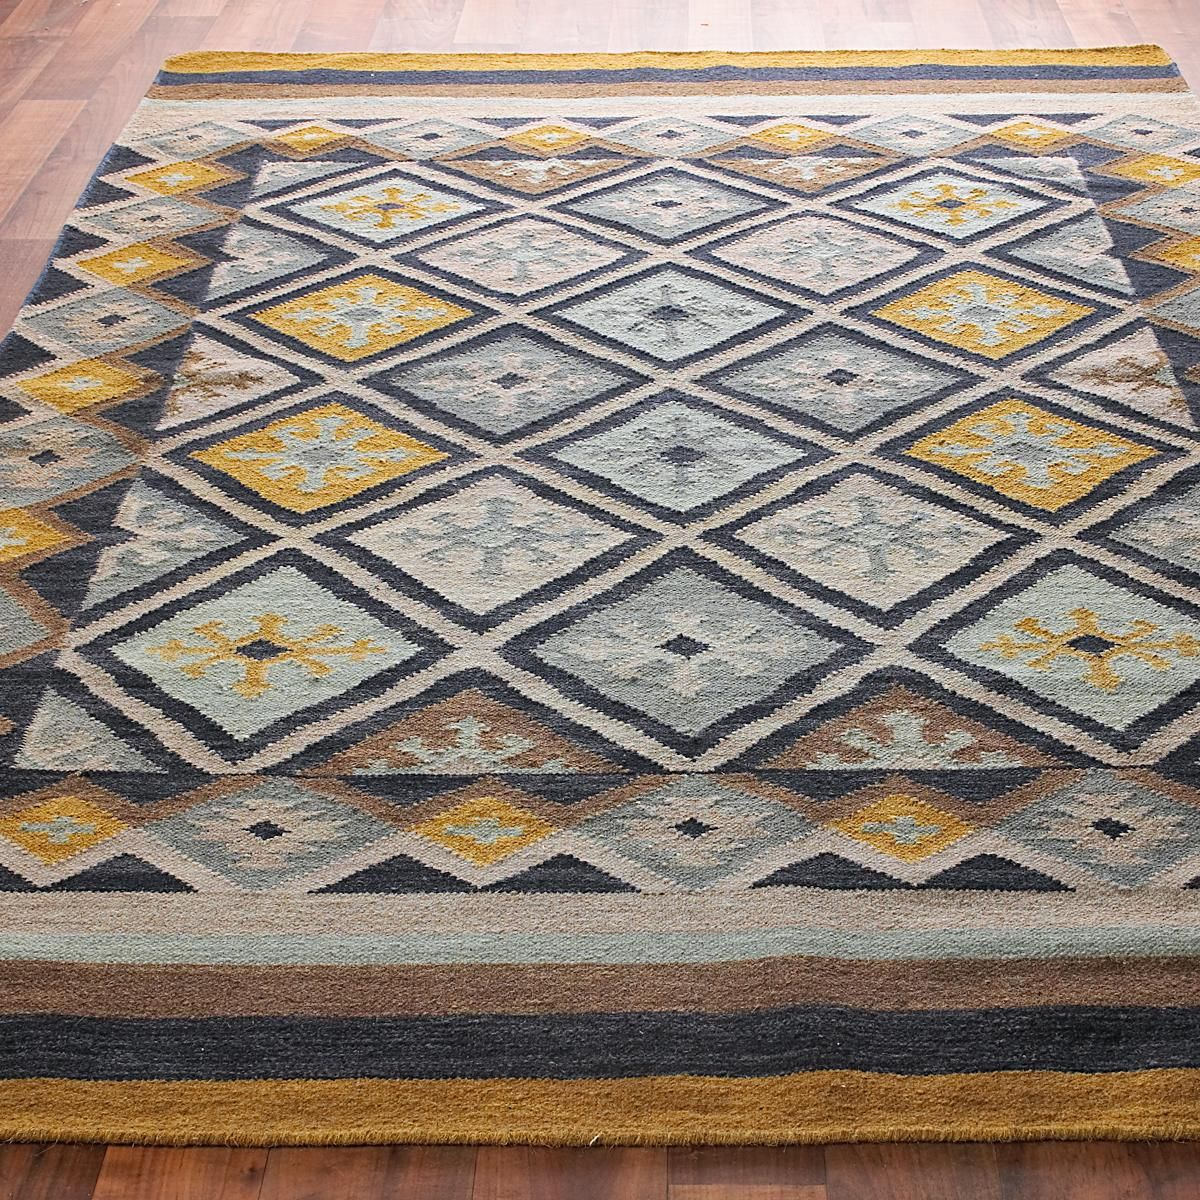 Moroccan Diamond Dhurrie Rug 2 Colors A Blend Of Bright And Subdued